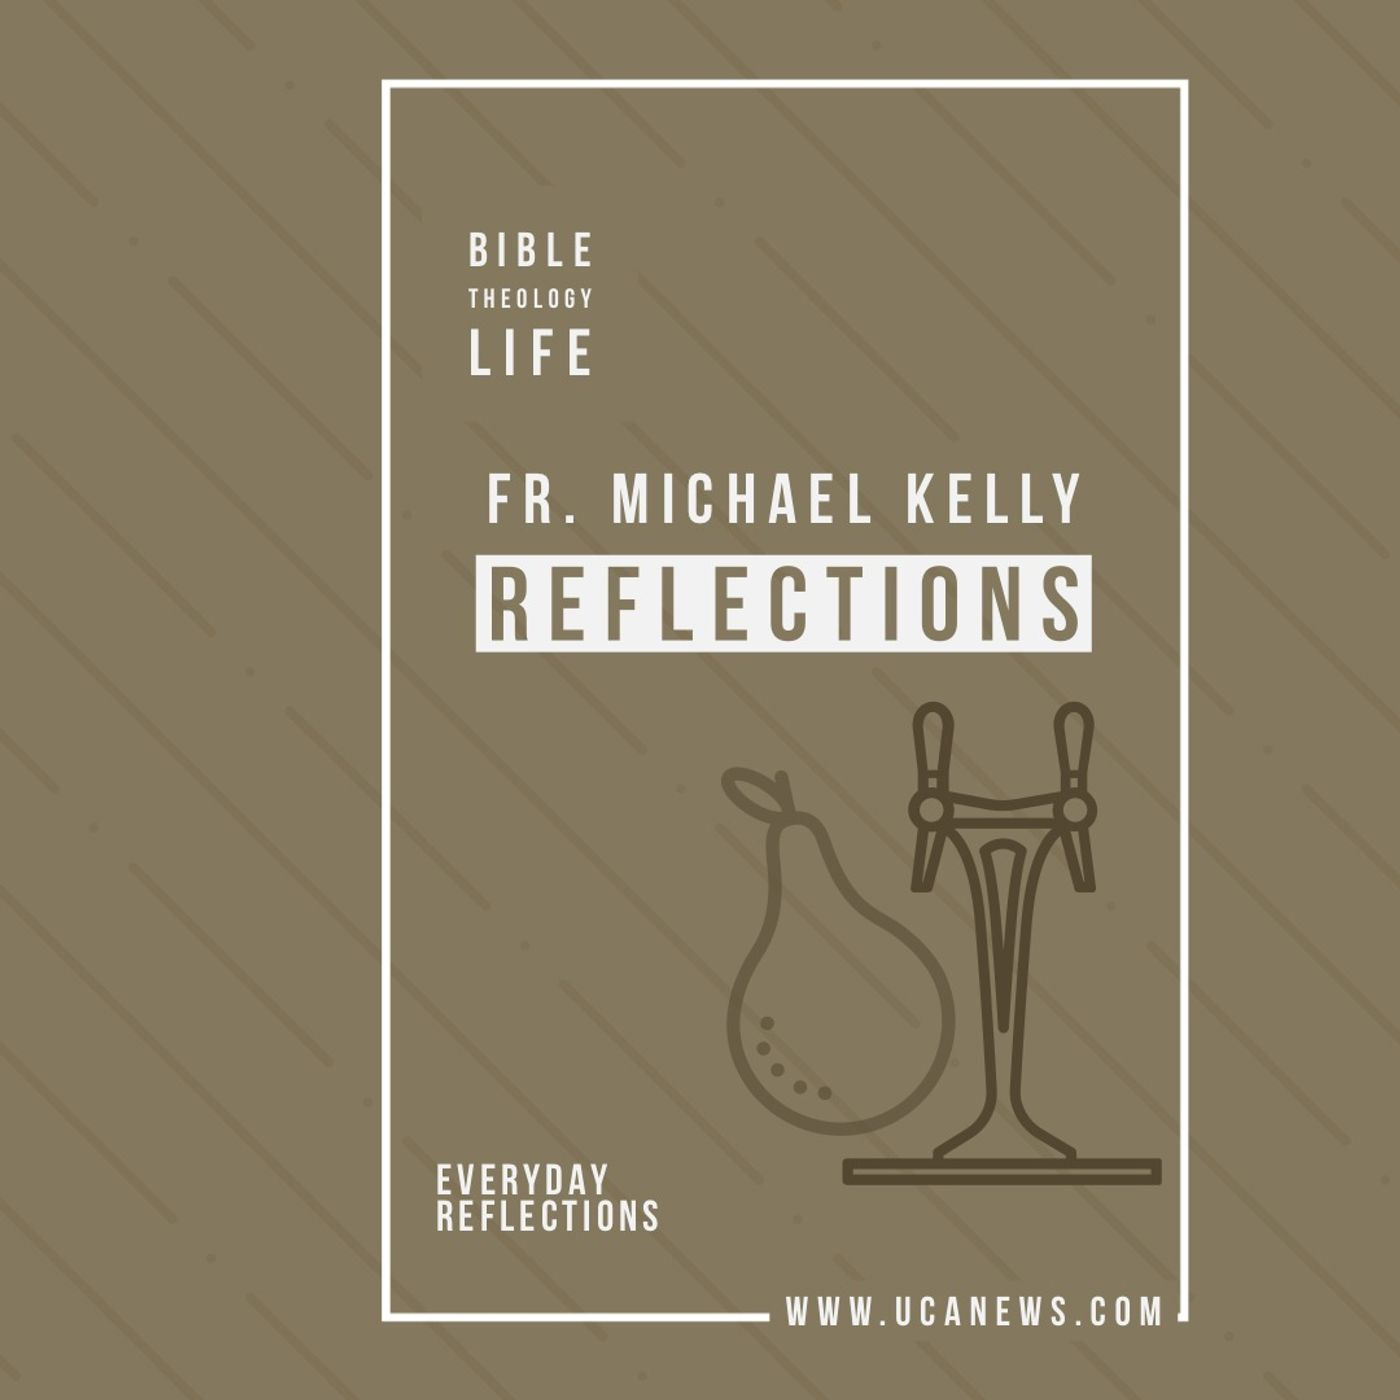 Reflections with Fr. Michael Kelly - Monday 25 Oct, 2021